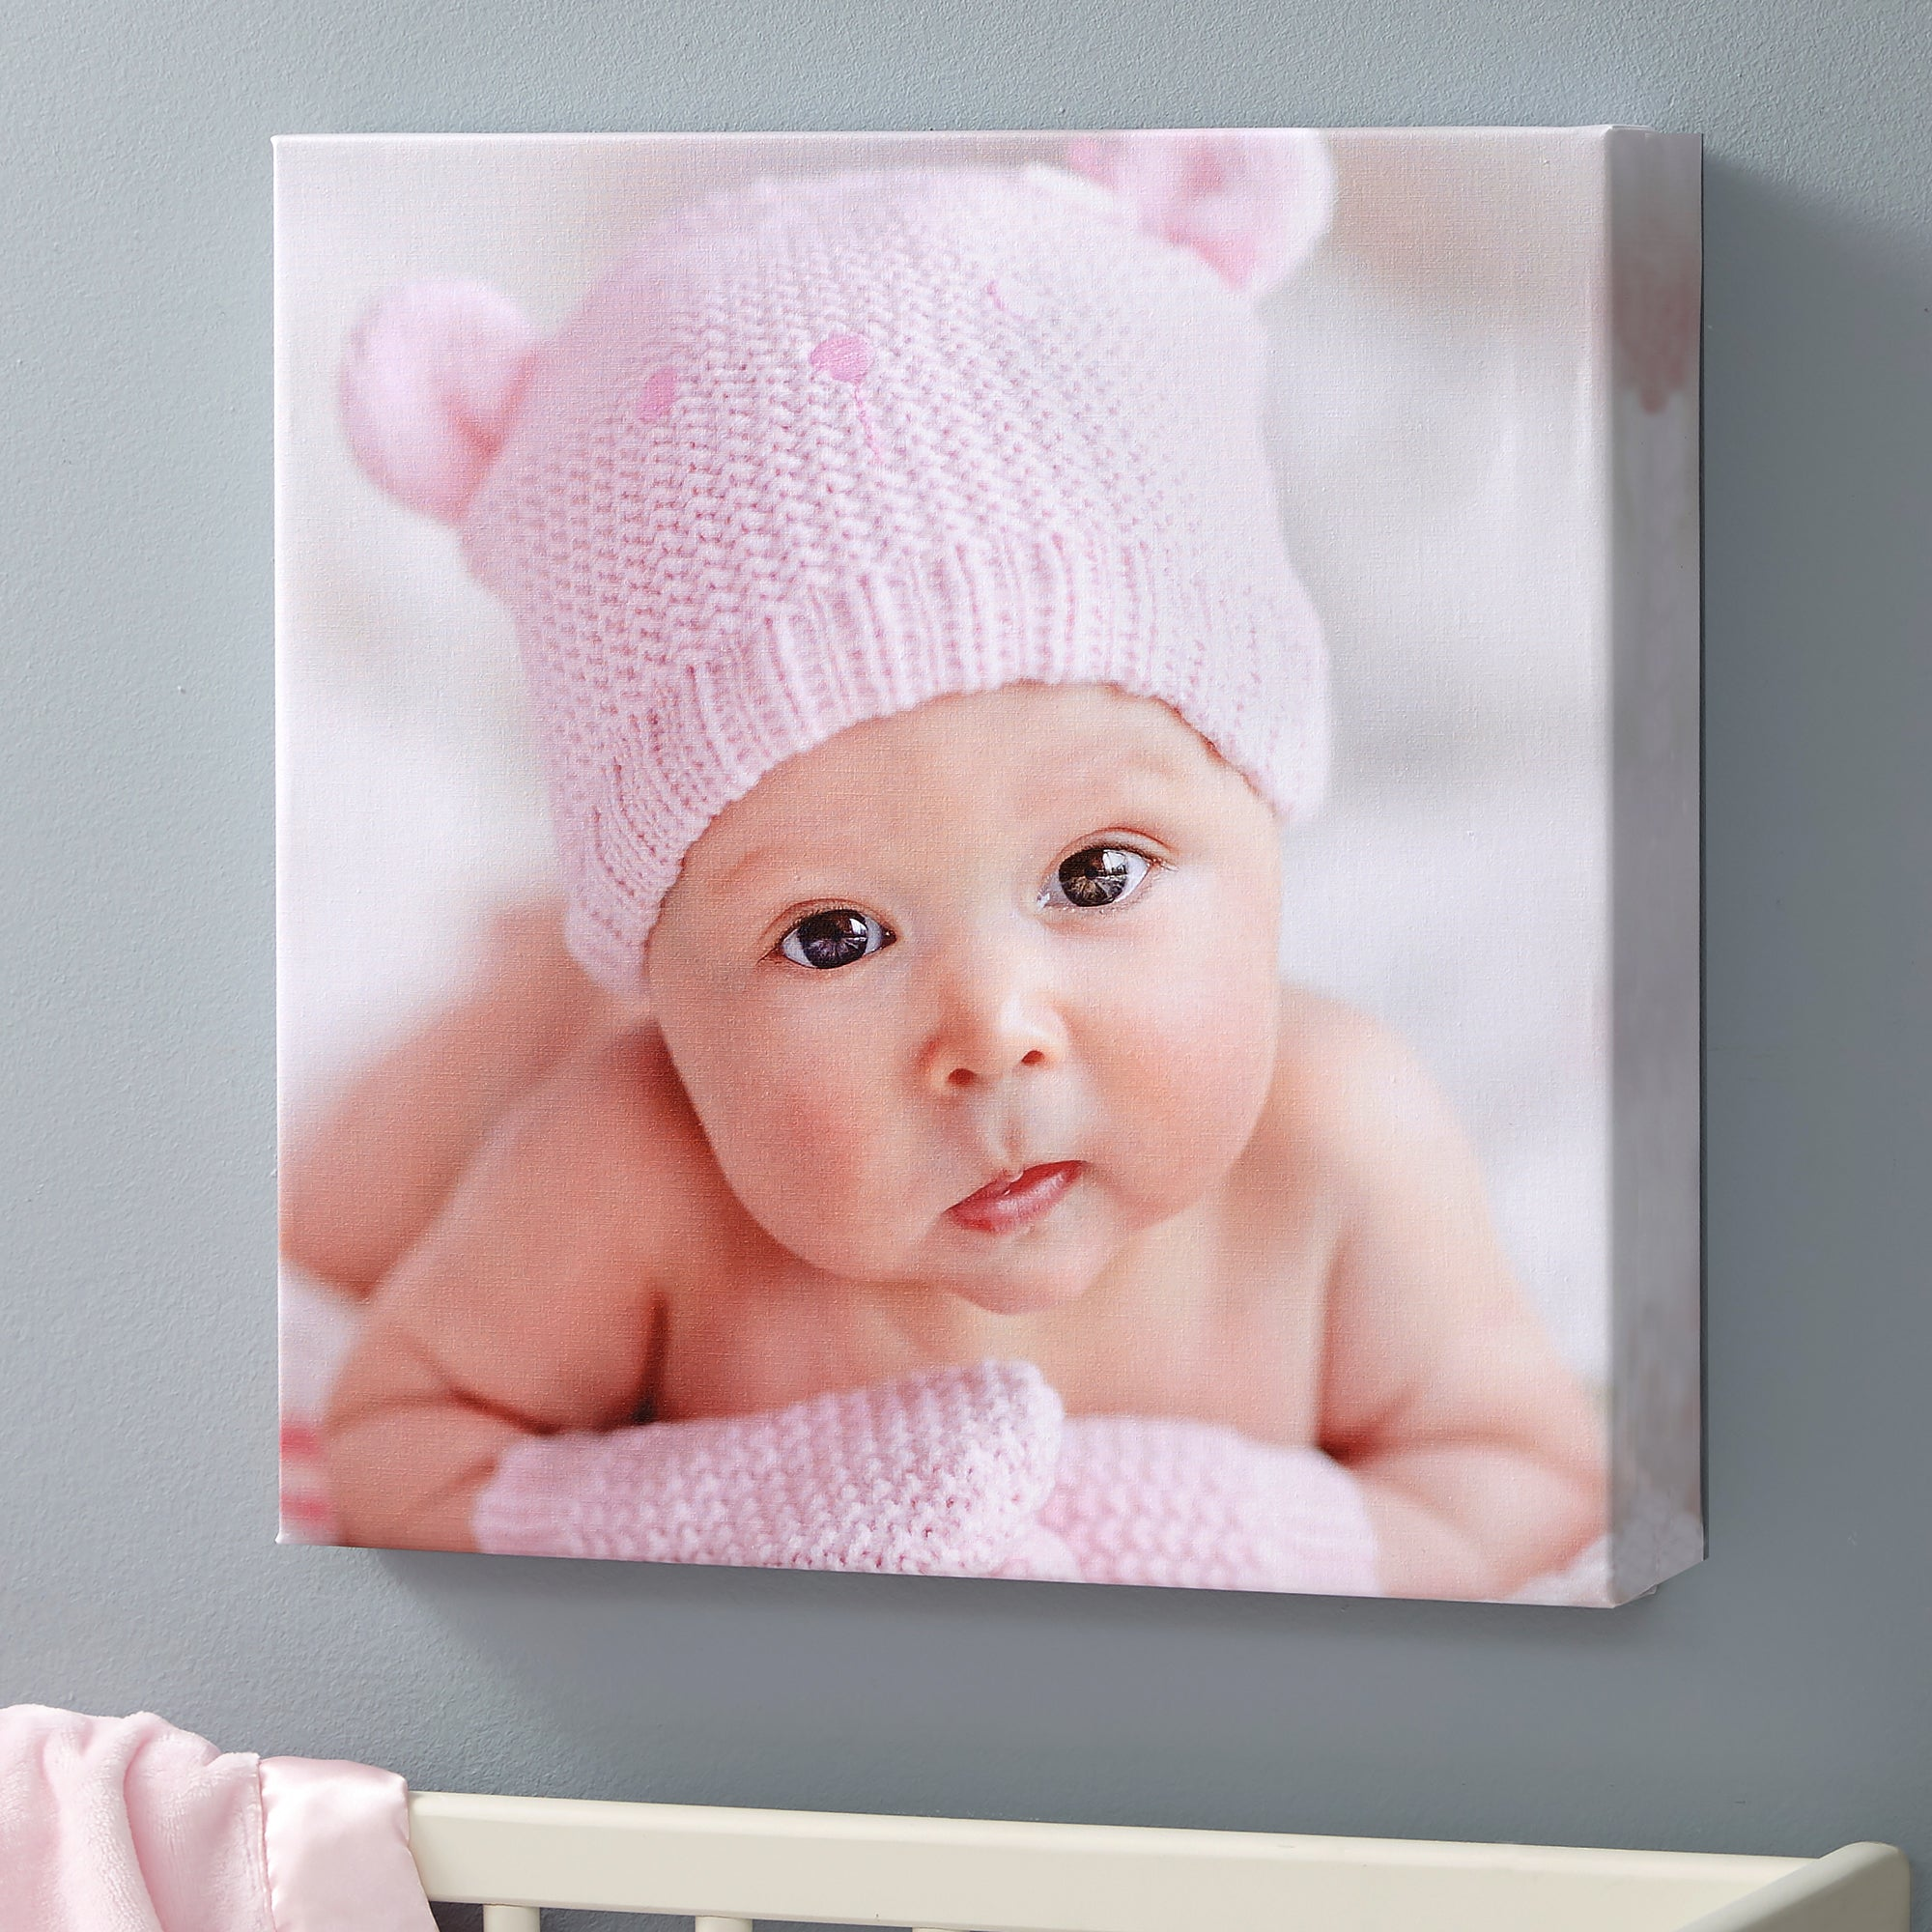 Canvas Print Size A 12x12 inches (300mmx300mm)